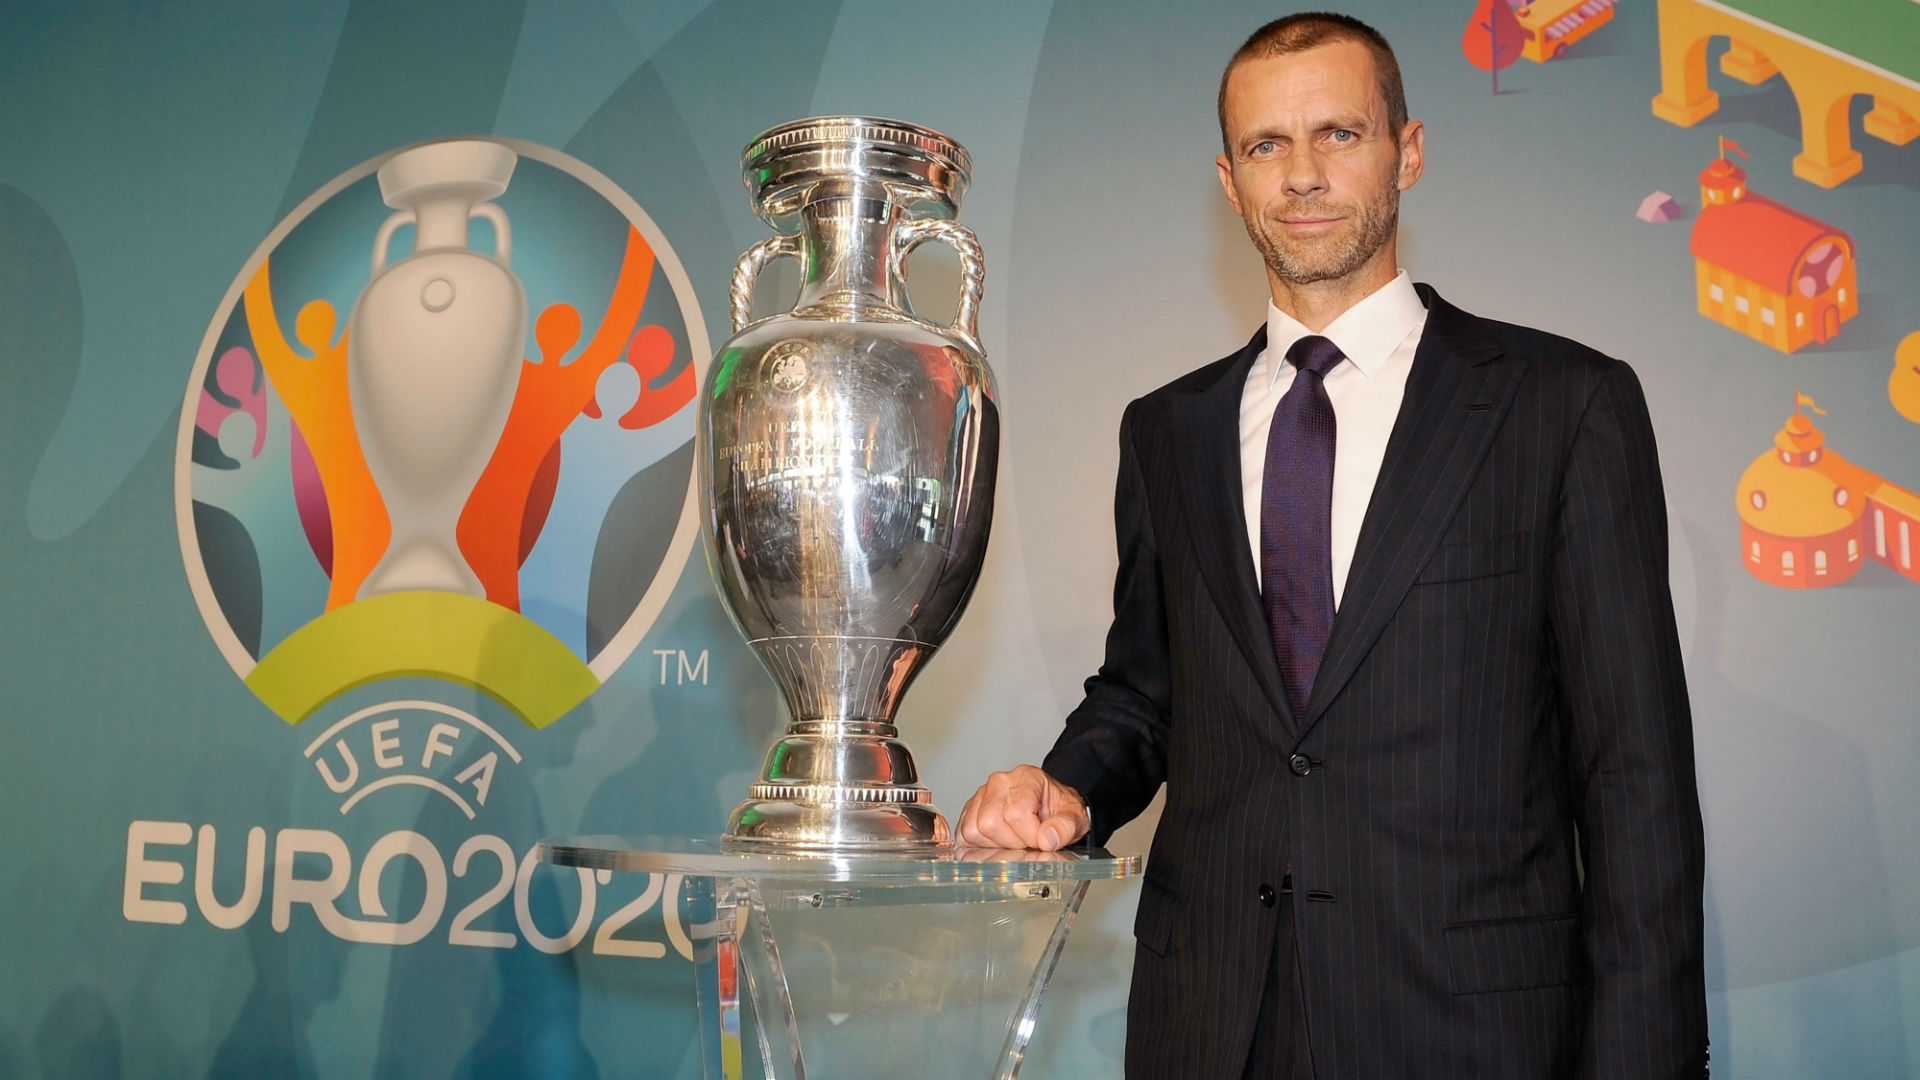 Coronavirus: UEFA has not received a single request to postpone Euro 2020